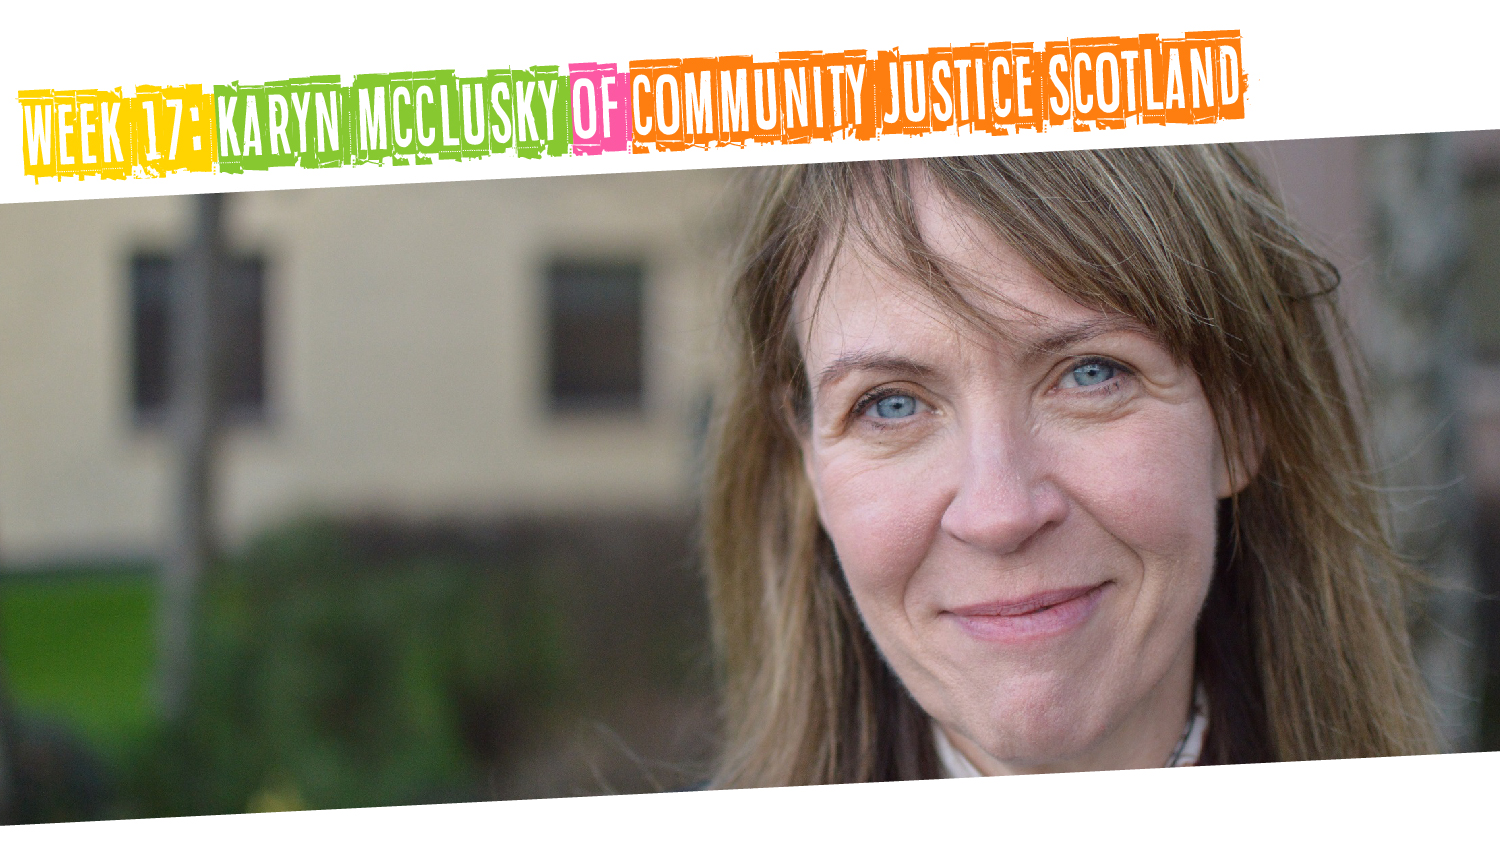 Week 17: Karyn McClusky of Community Justice Scotland